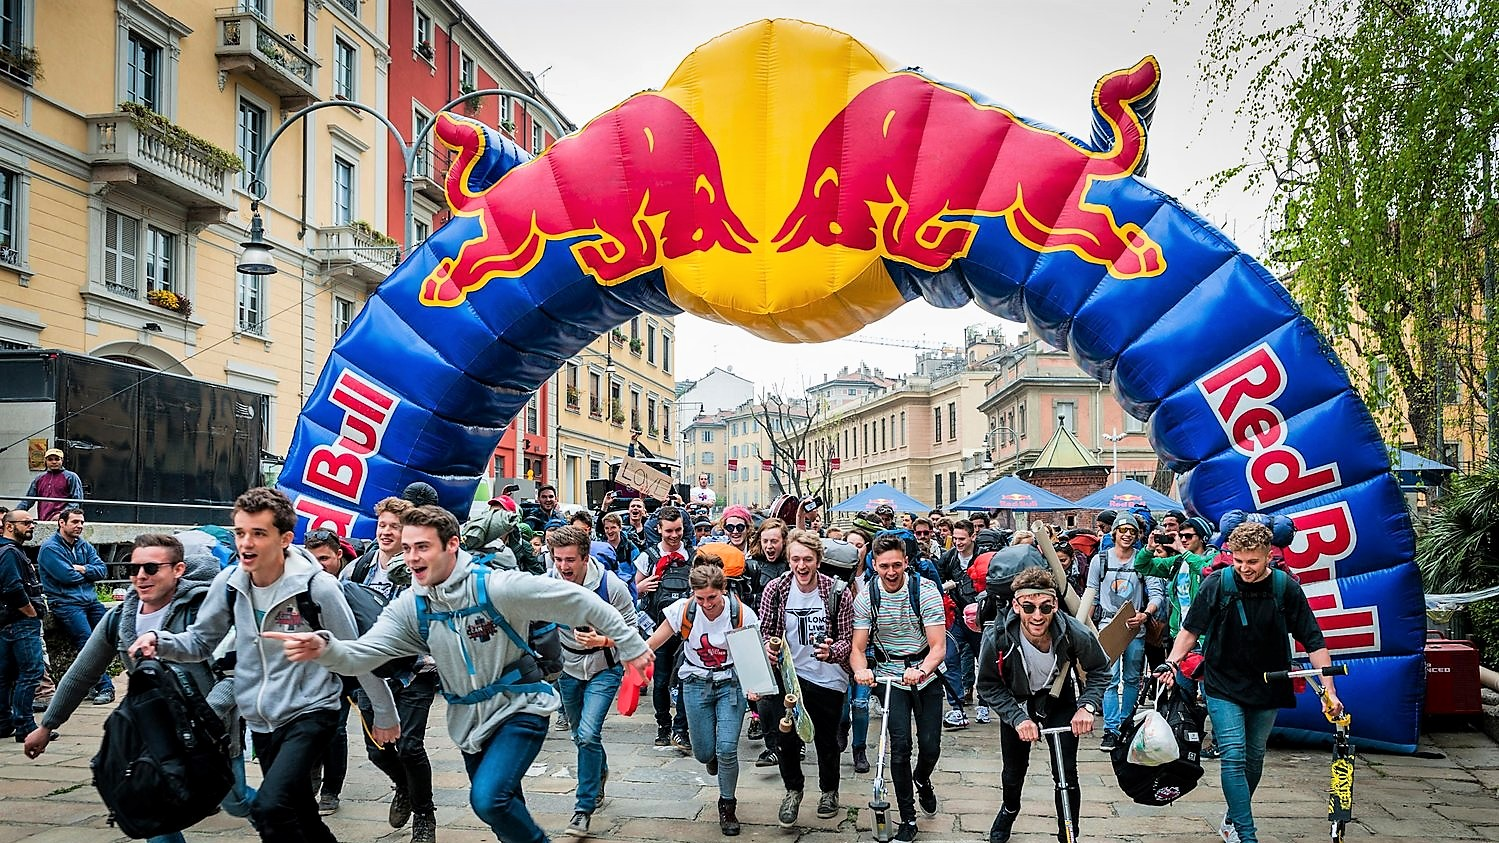 Opblaasbare maatwerk boog - Redbull start finish boog hardlopen inflatable custom made arch